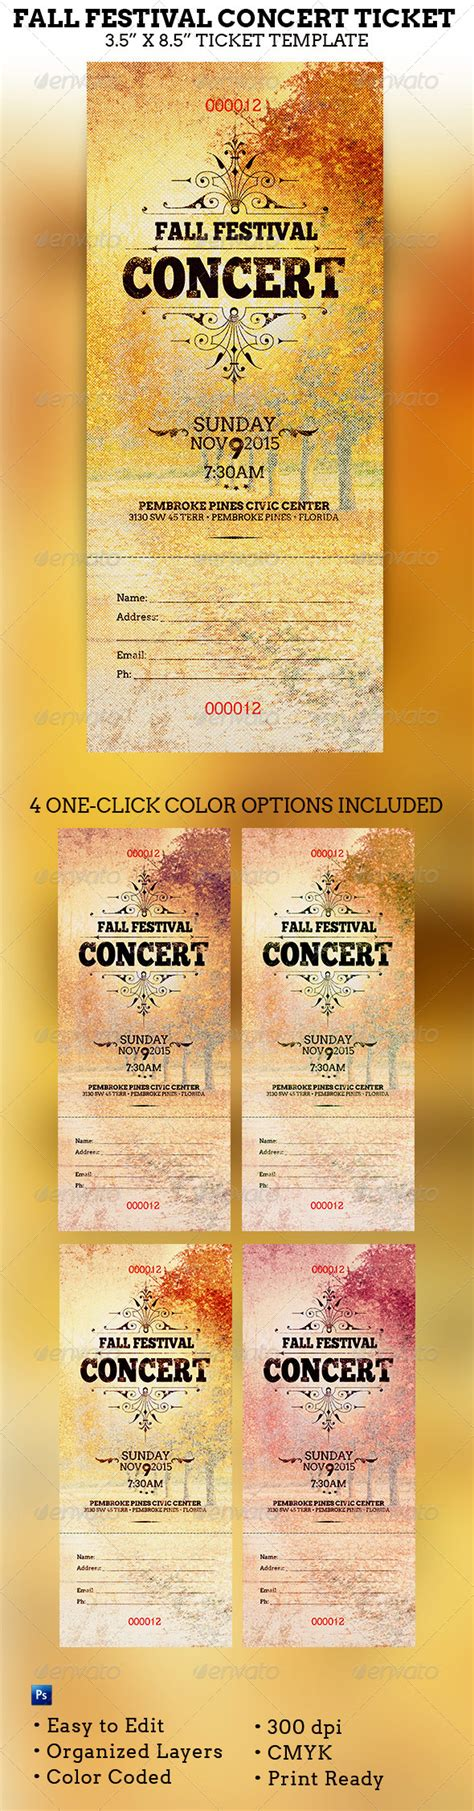 gig ticket template fall festival concert ticket template concert ticket